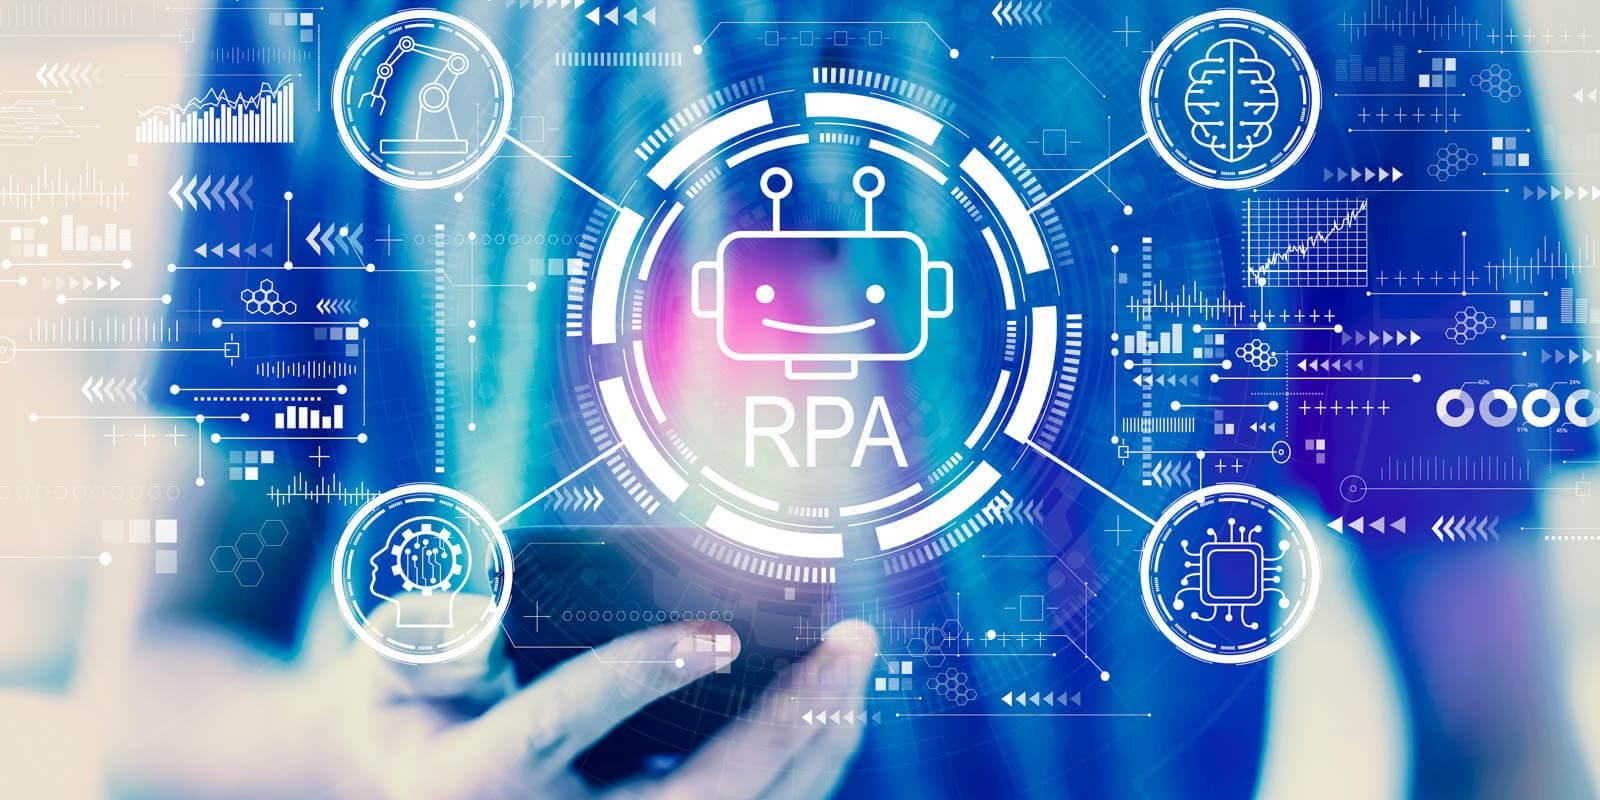 Why Robotic Process Automation (RPA) Is The Perfect Technology For Business 3